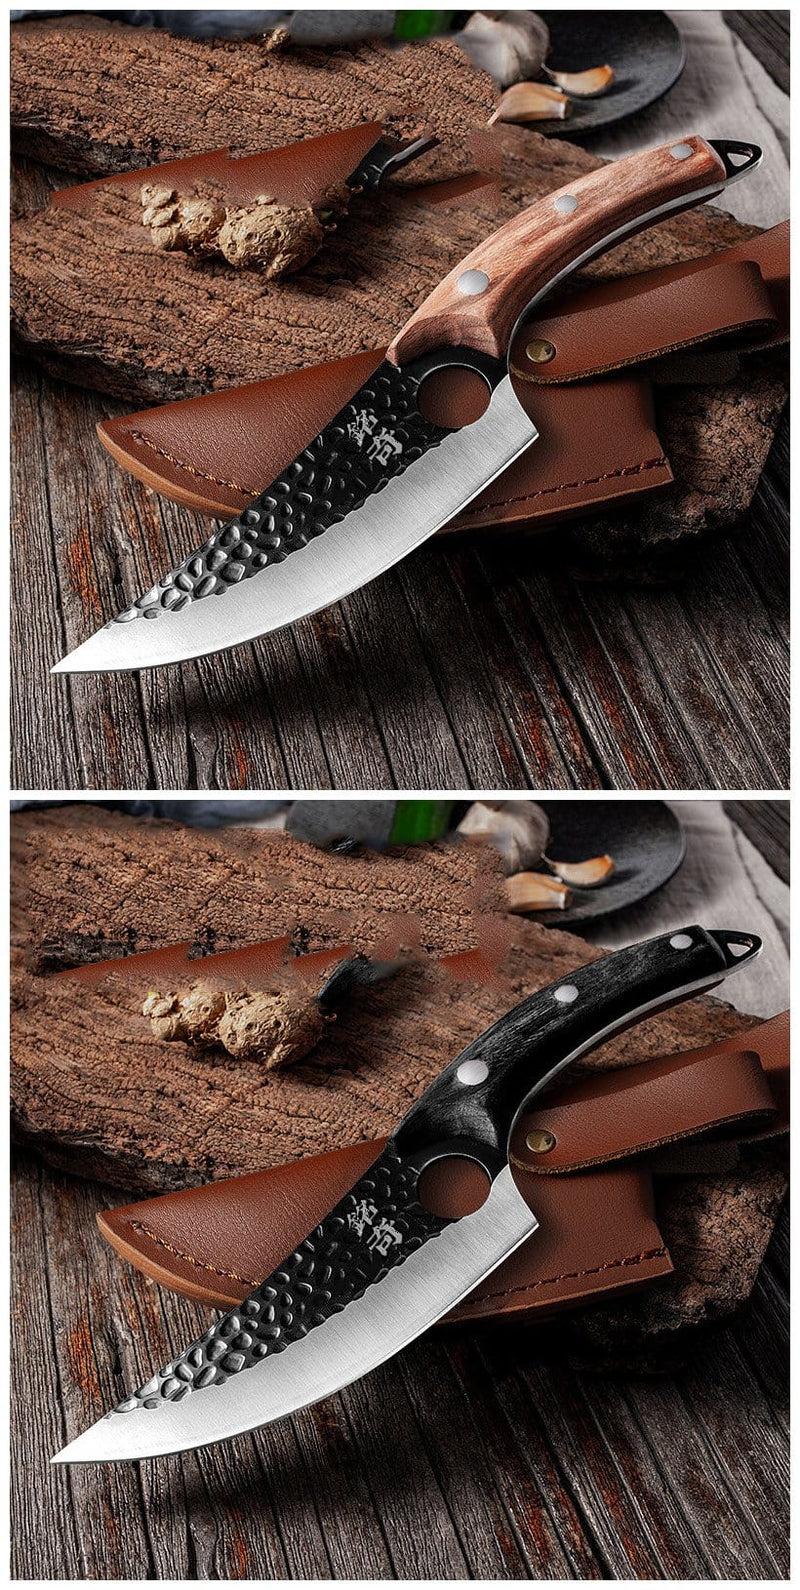 Handcrafted Boning Knife